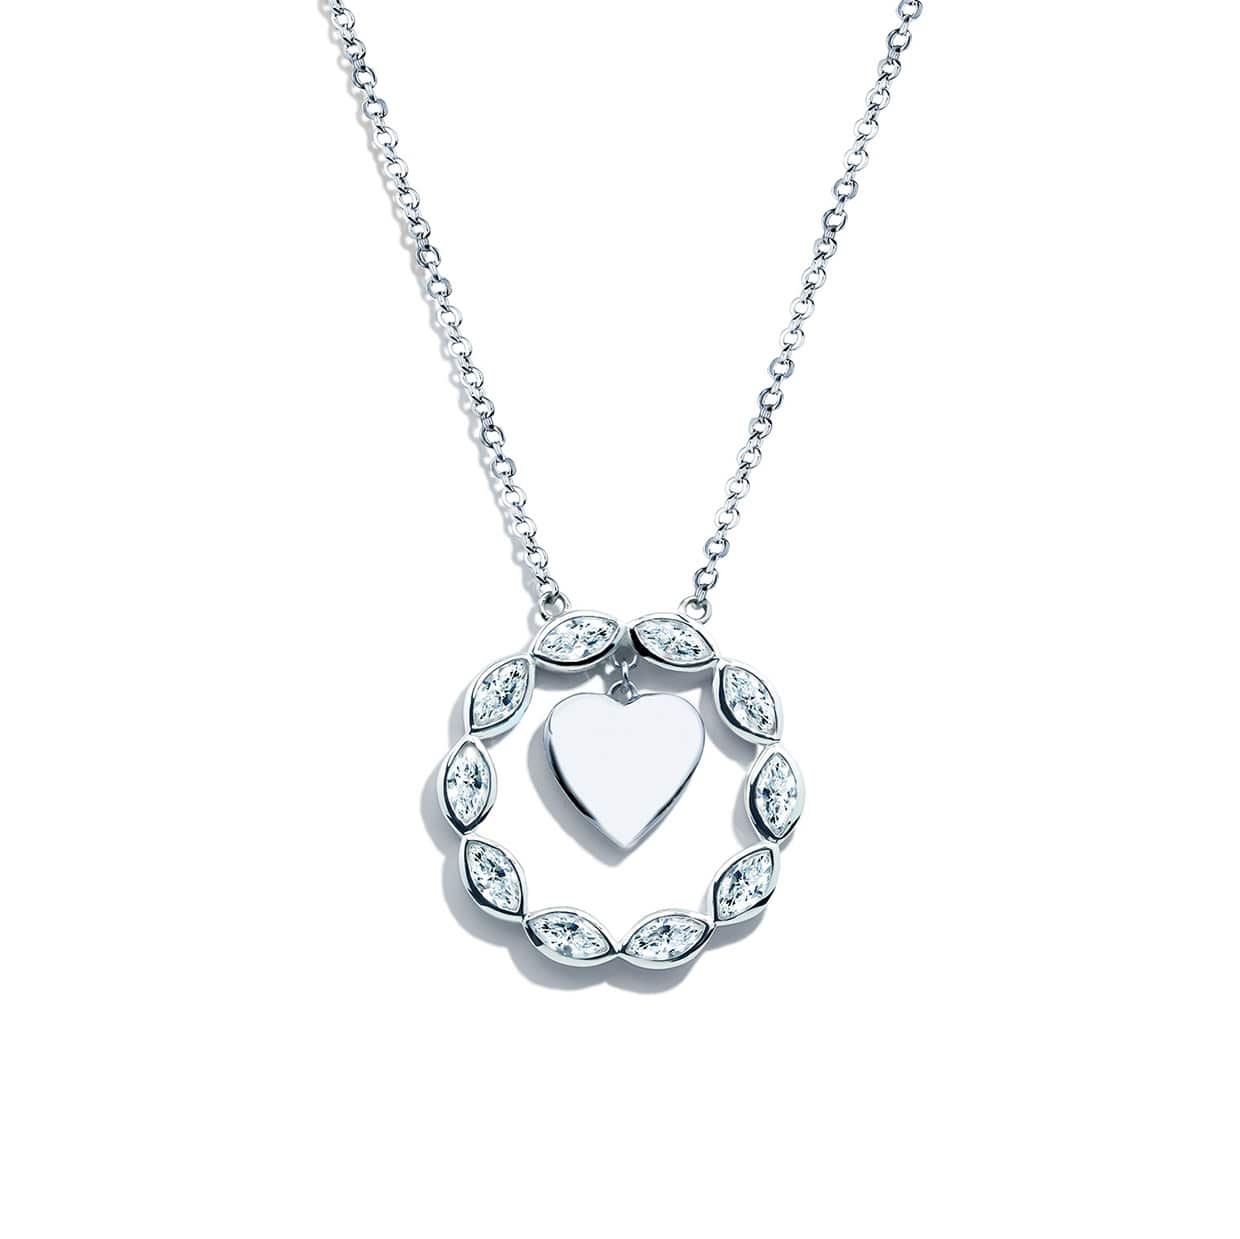 Loving Silver Moveable Heart Necklace - Abelstedt